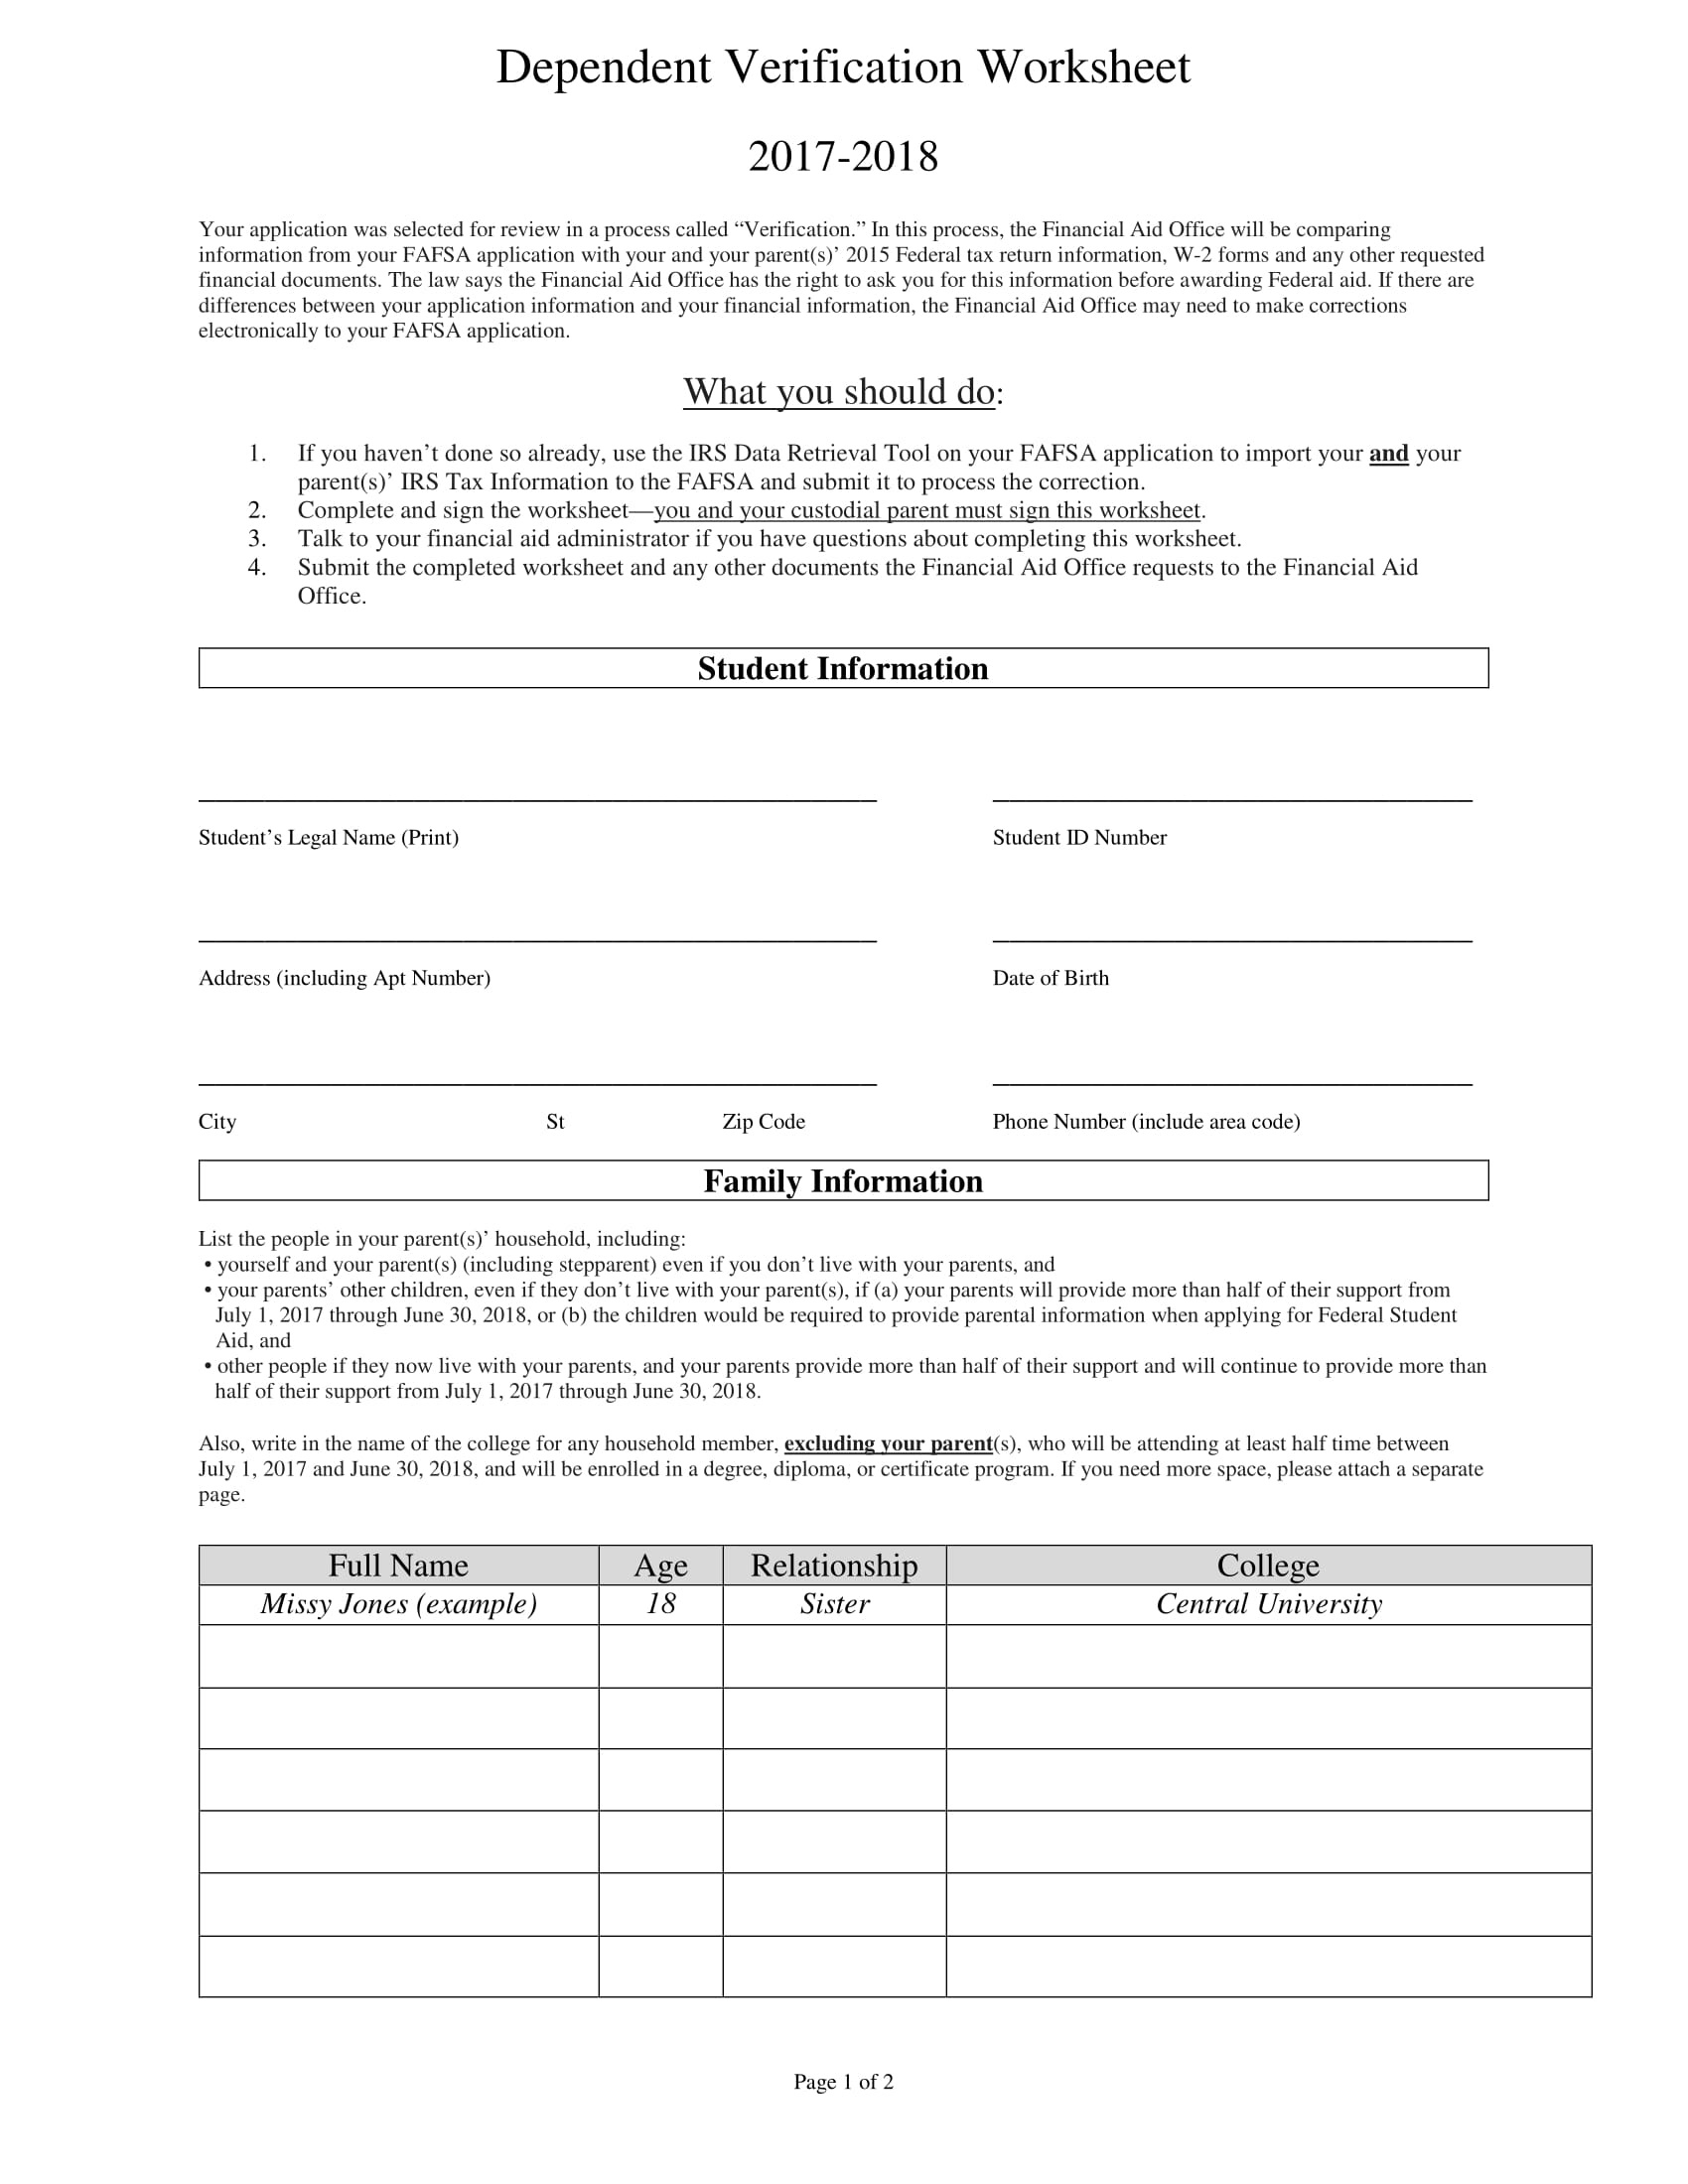 How To Fill Out A Dependent Verification Form Usages